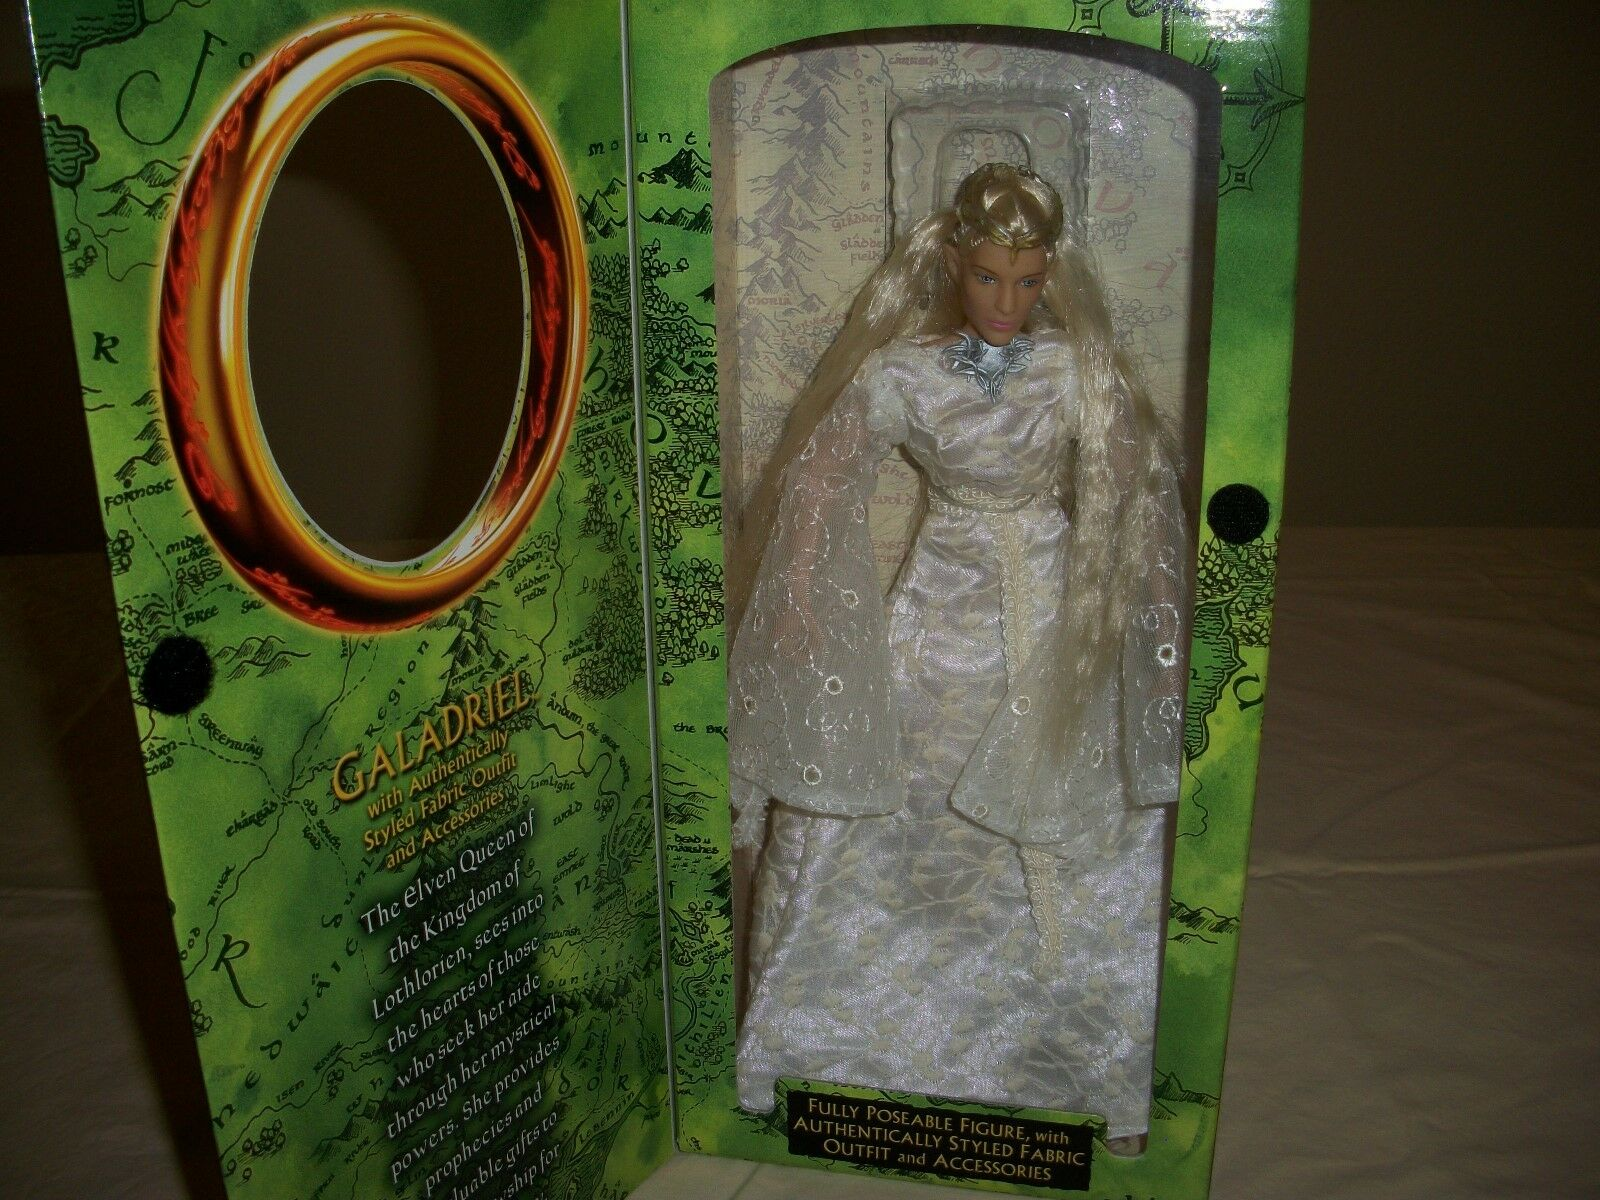 Lord of the Rings, The Fellowship of the Ring Galadriel, Édition Spéciale Collector Series doll